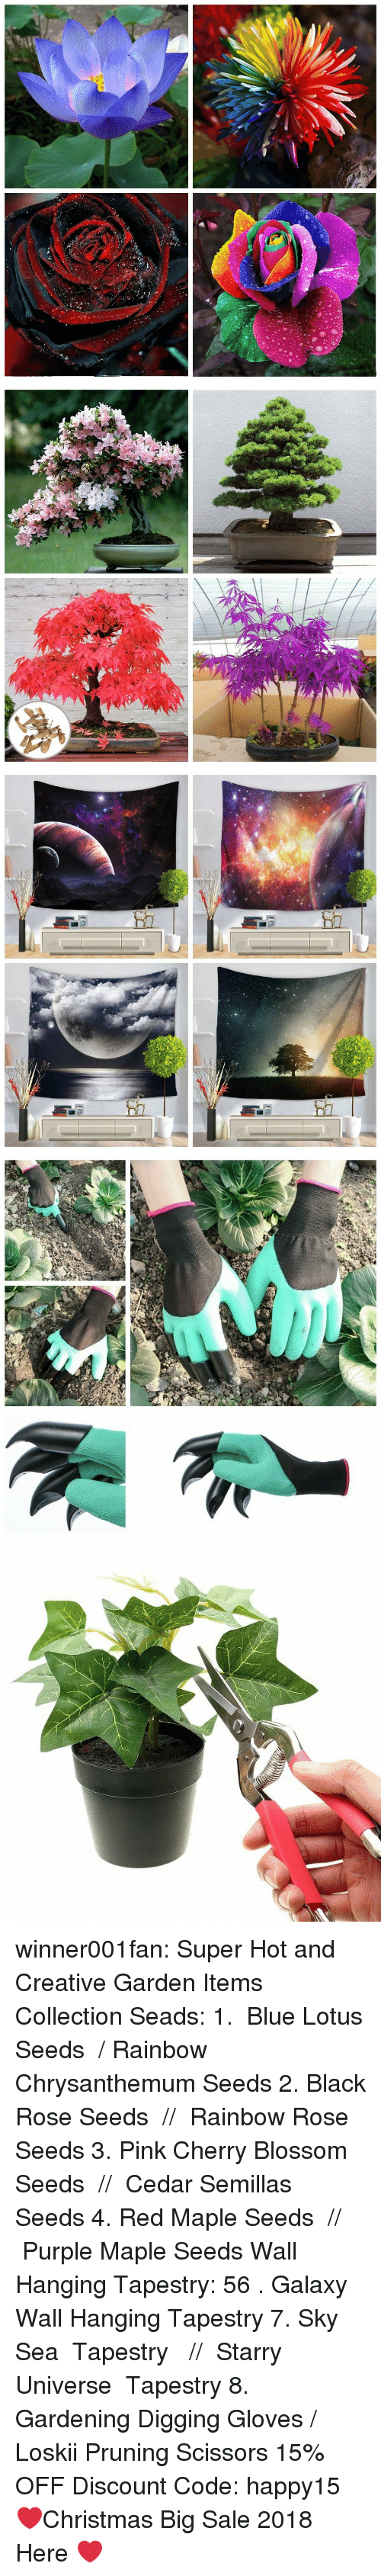 Gardening: winner001fan: Super Hot and Creative Garden Items Collection Seads: 1.  Blue Lotus Seeds  / Rainbow Chrysanthemum Seeds  2. Black Rose Seeds  //  Rainbow Rose Seeds  3. Pink Cherry Blossom Seeds  //  Cedar Semillas Seeds  4. Red Maple Seeds  //  Purple Maple Seeds  Wall Hanging Tapestry: 56 . Galaxy Wall Hanging Tapestry  7. Sky Sea  Tapestry   //  Starry Universe  Tapestry  8. Gardening Digging Gloves  / Loskii Pruning Scissors  15% OFF Discount Code: happy15 ❤Christmas Big Sale 2018 Here ❤